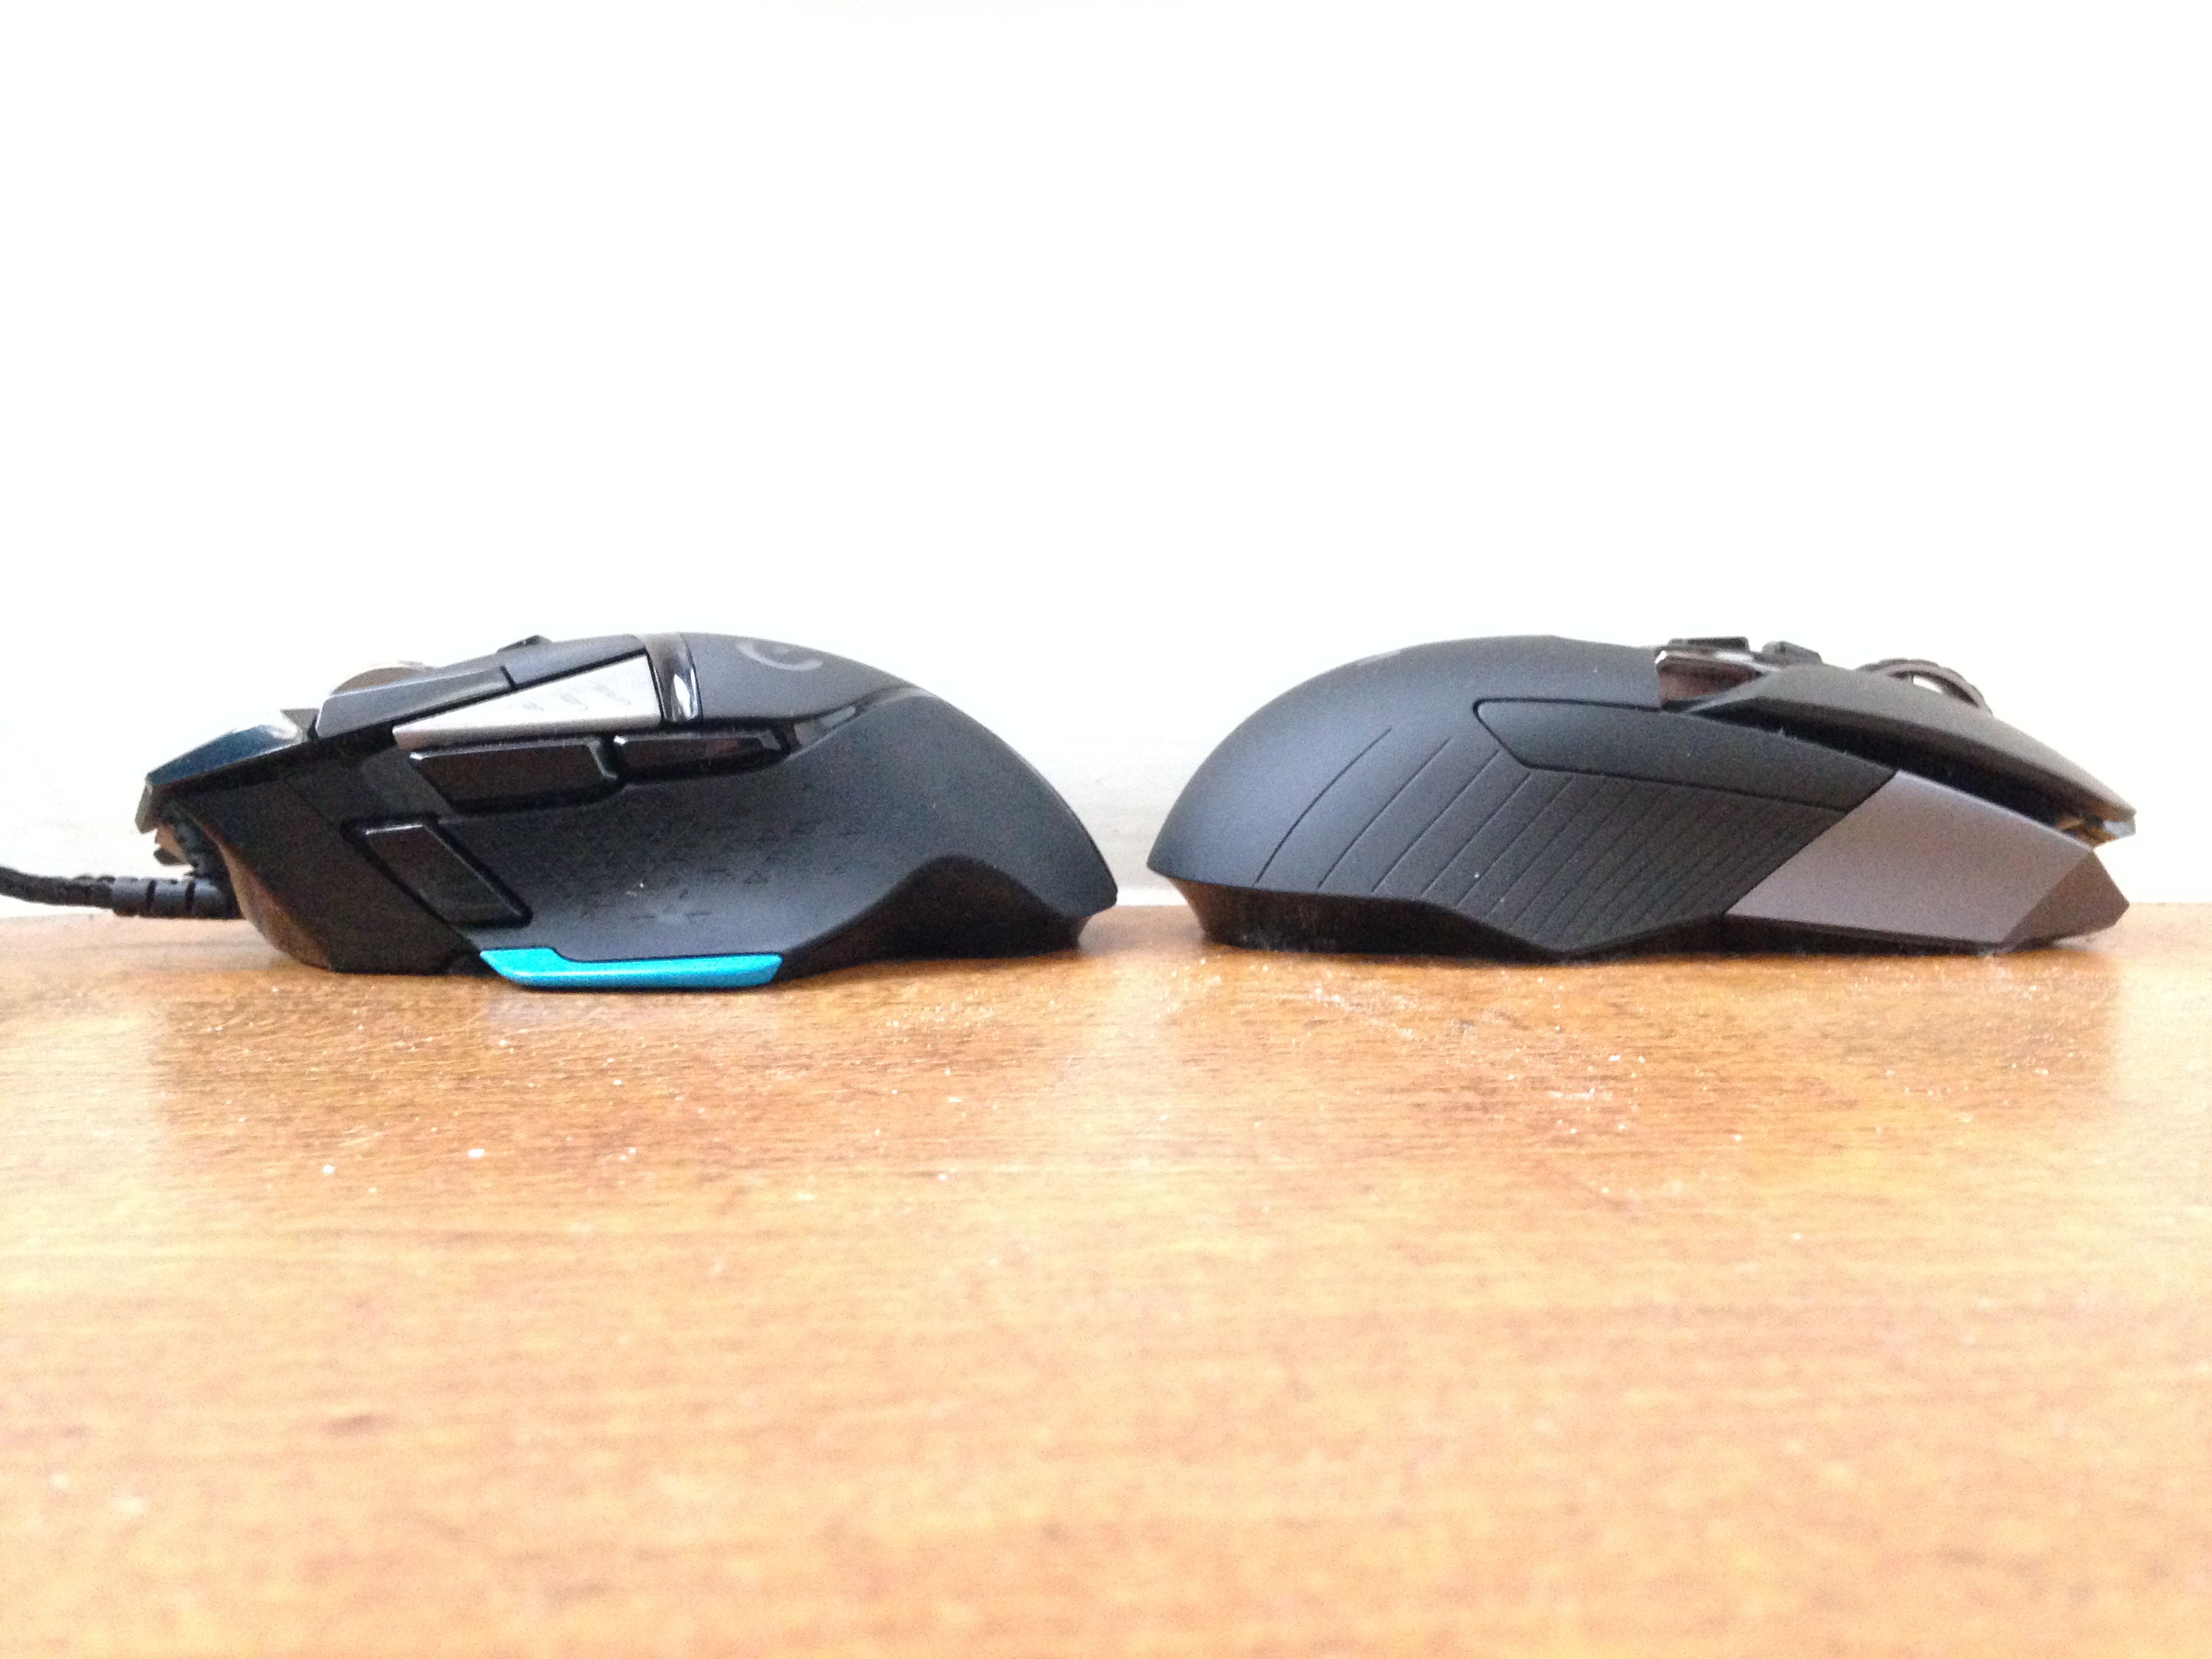 517d827b77b Review of Logitech G900 Chaos Spectrum Wireless Gaming Mouse - by ...